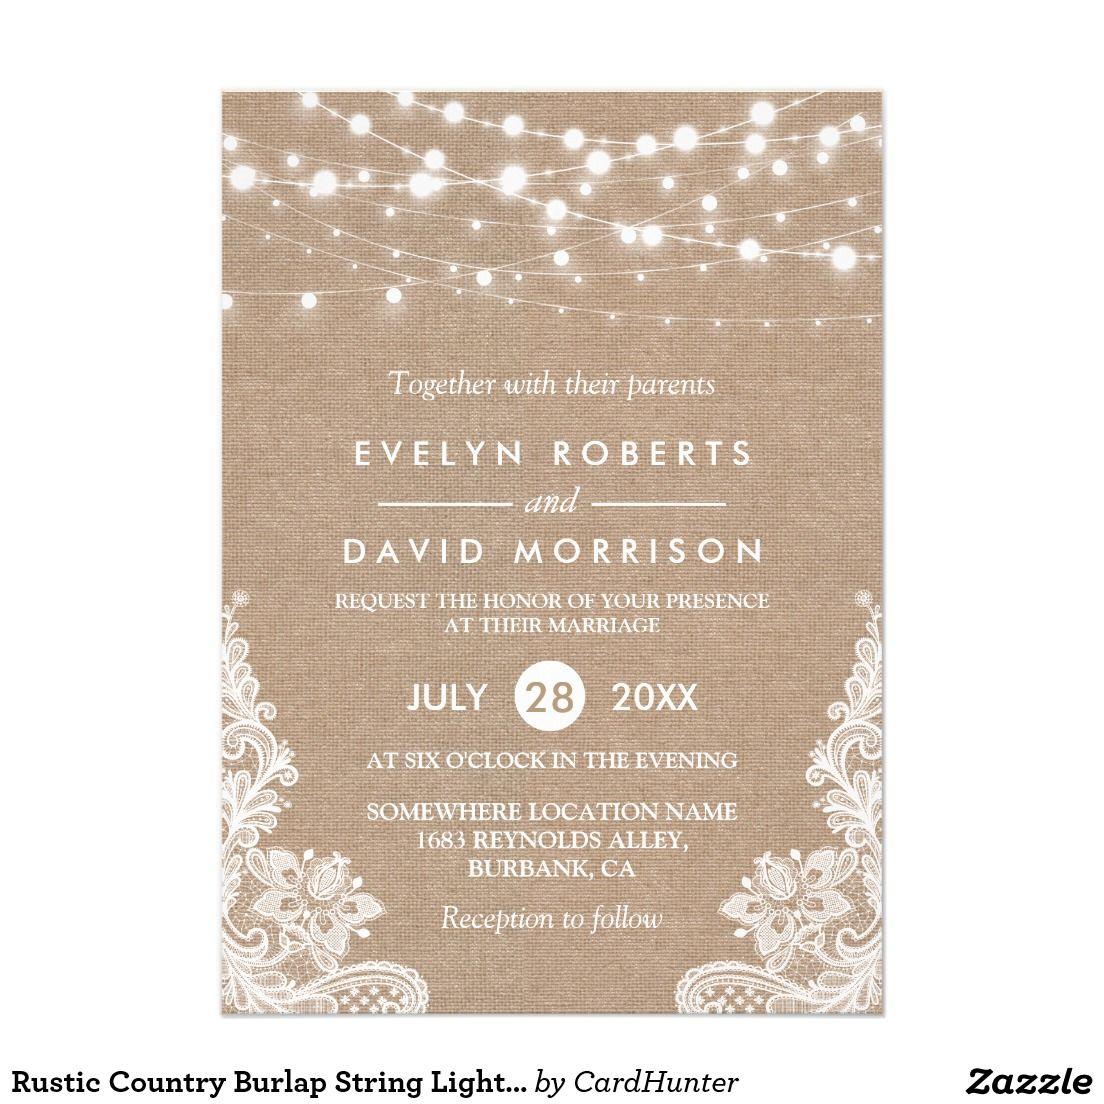 Rustic Country Burlap String Lights Lace Wedding Invitation Burlap